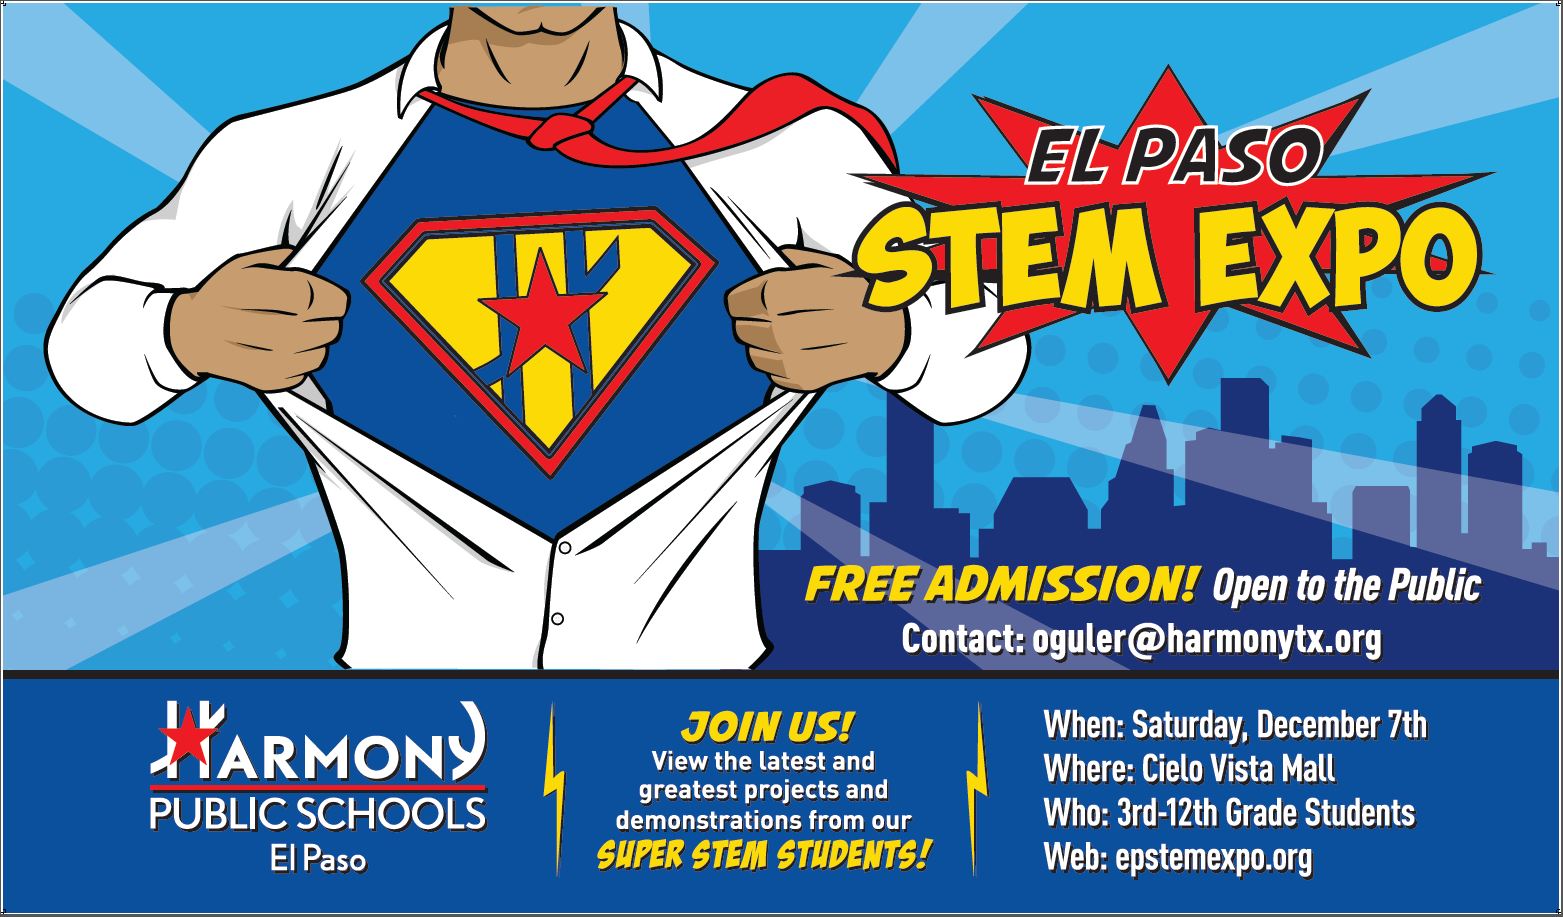 An image of the STEM Expo flier on Saturday, December 7th, at the Cielo Vista Mall.